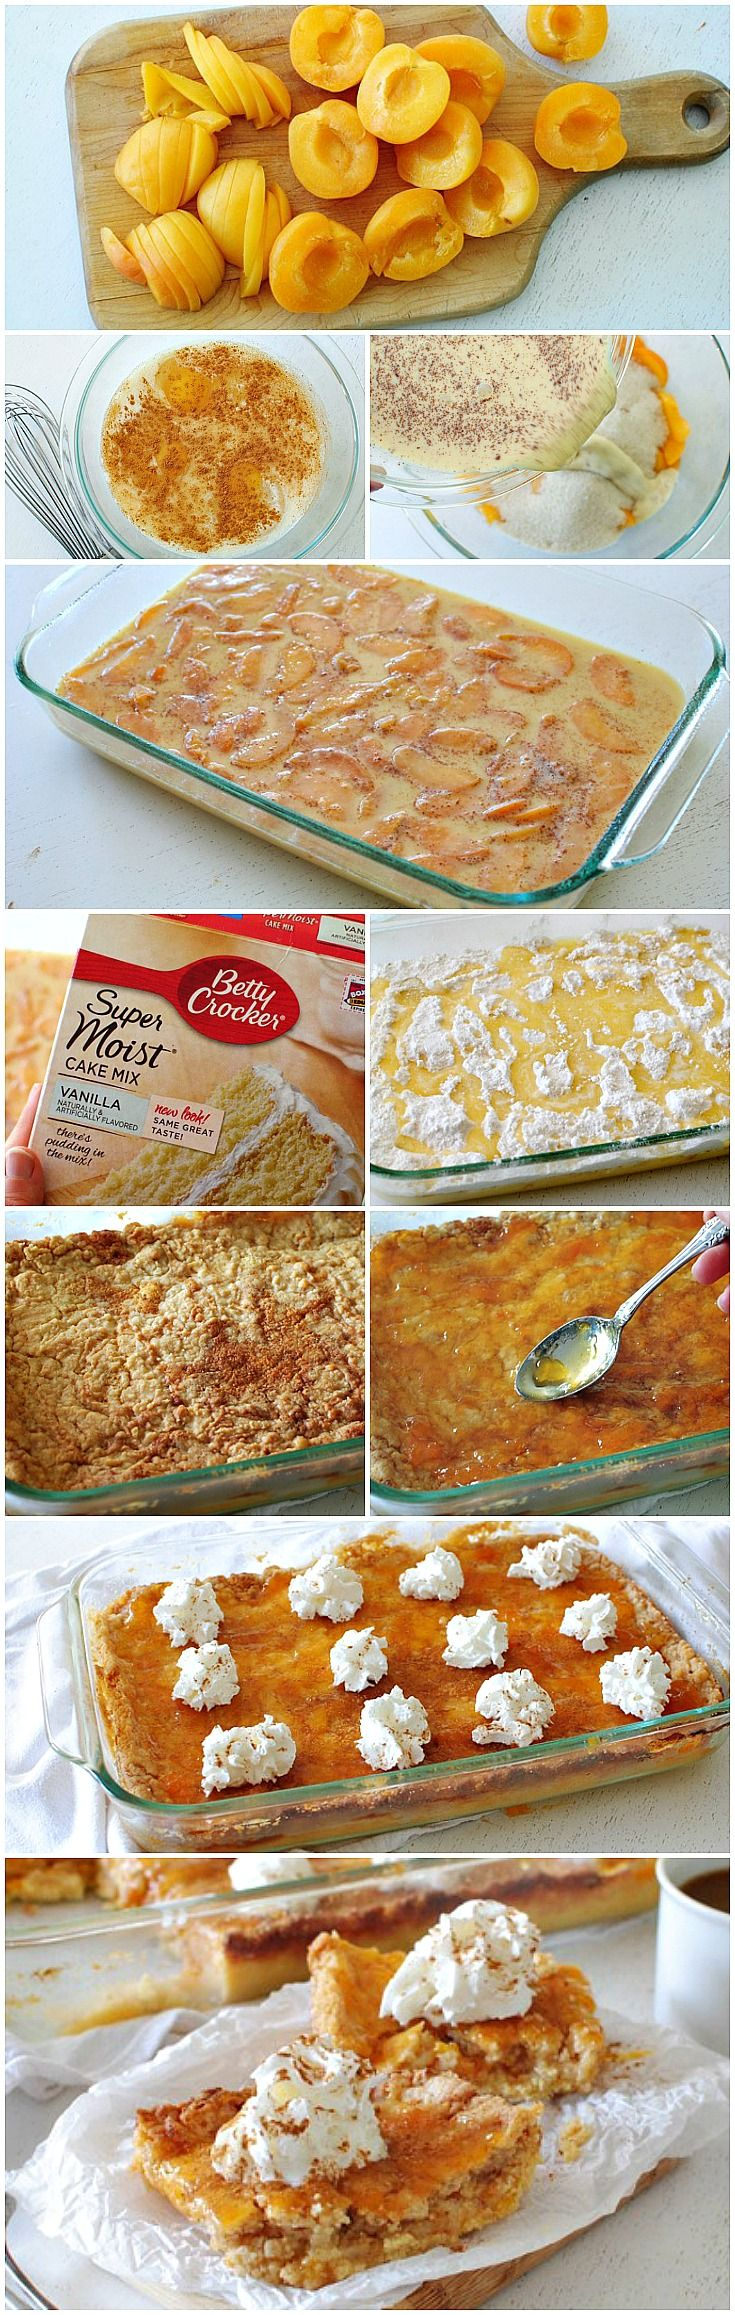 I can convert this into Dairy free and Gluten free for my family- Apricot Dump Cake #bettycrocker